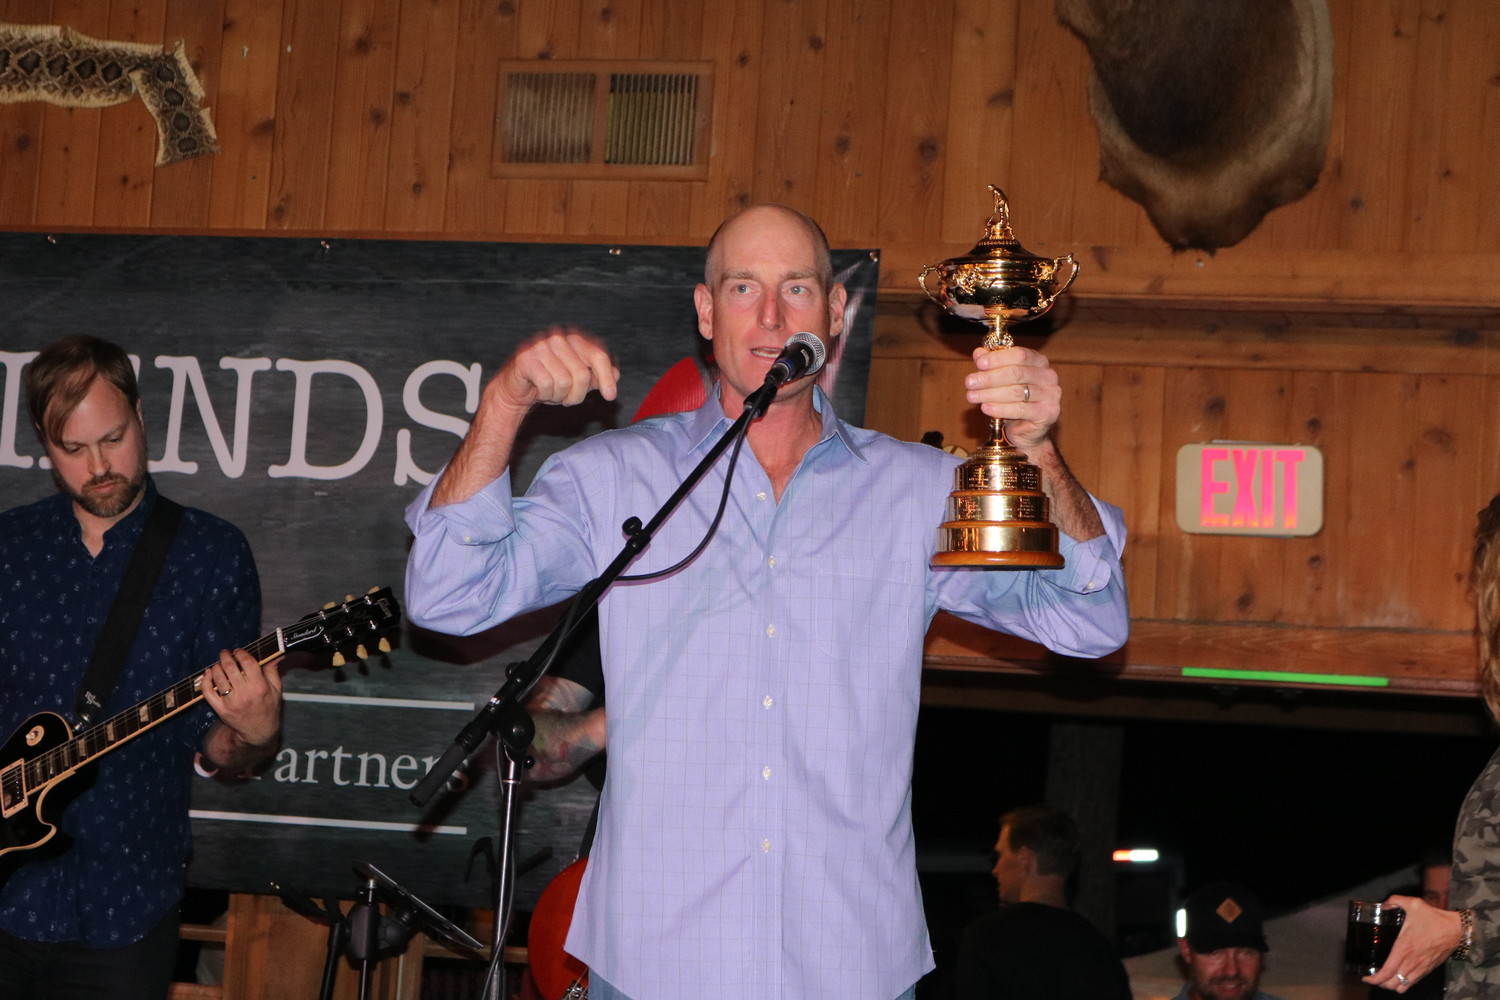 Jim Furyk addresses the attendees of the concert with the Ryder Cup trophy in hand.